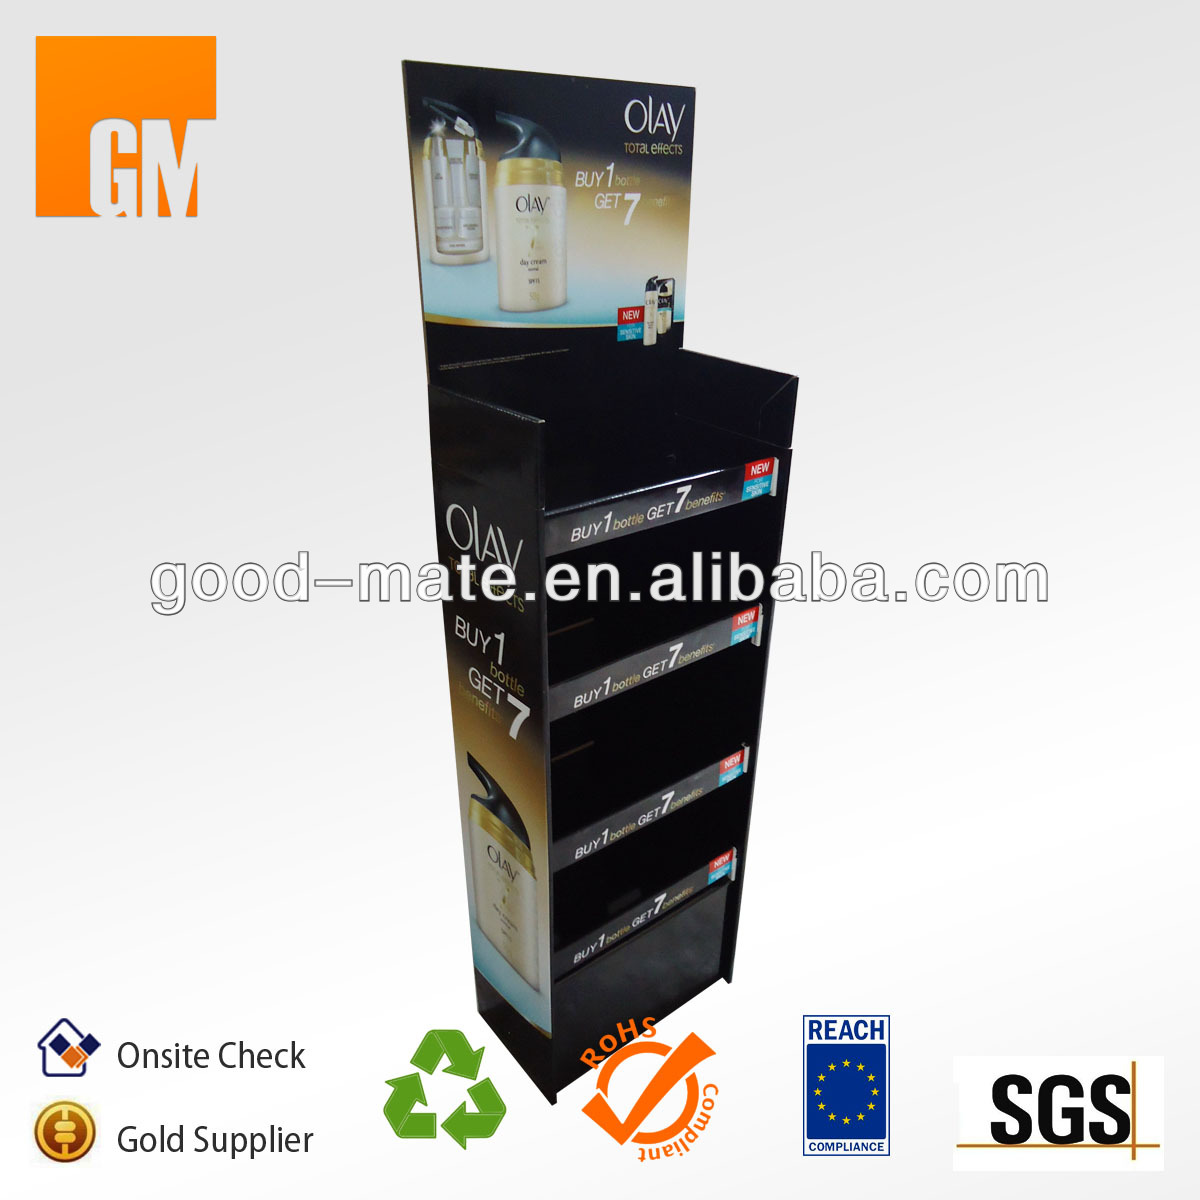 Corrugated Cardboard Floor Standing Display Units for Olay Cream